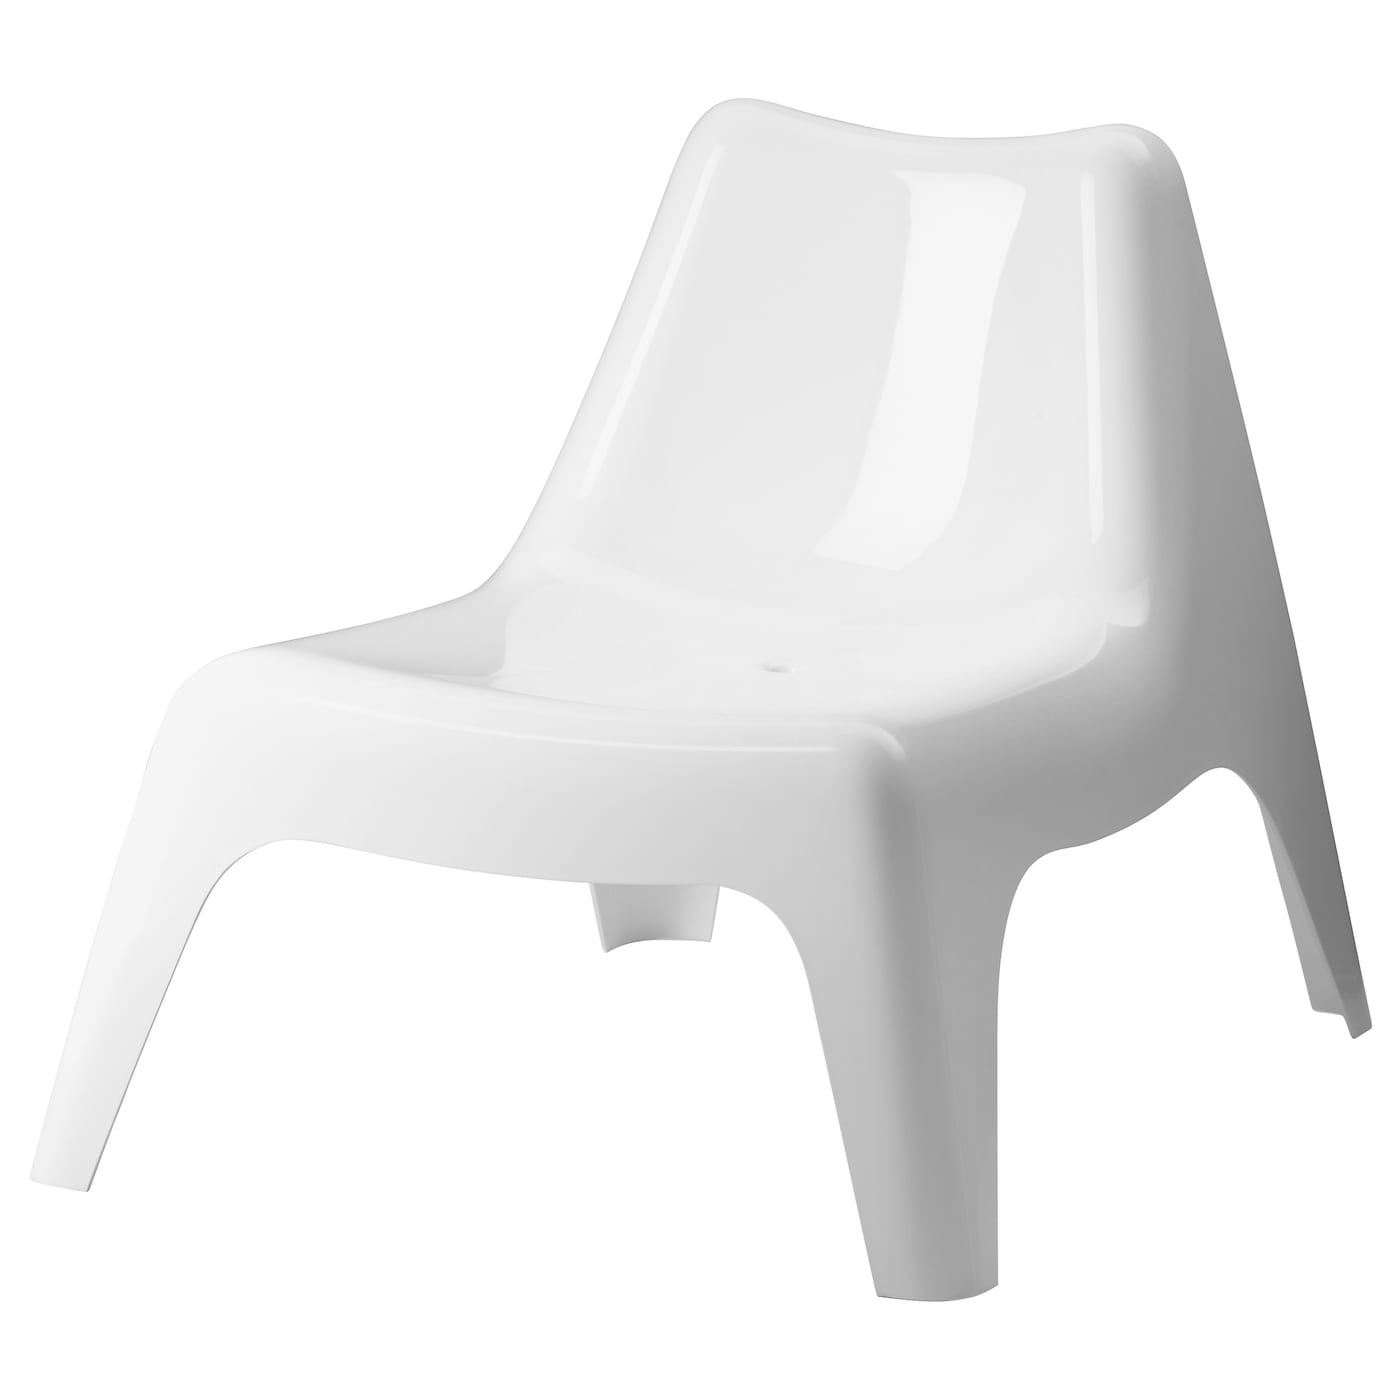 Ikea ps v g easy chair outdoor white ikea for Ikea meubles exterieur